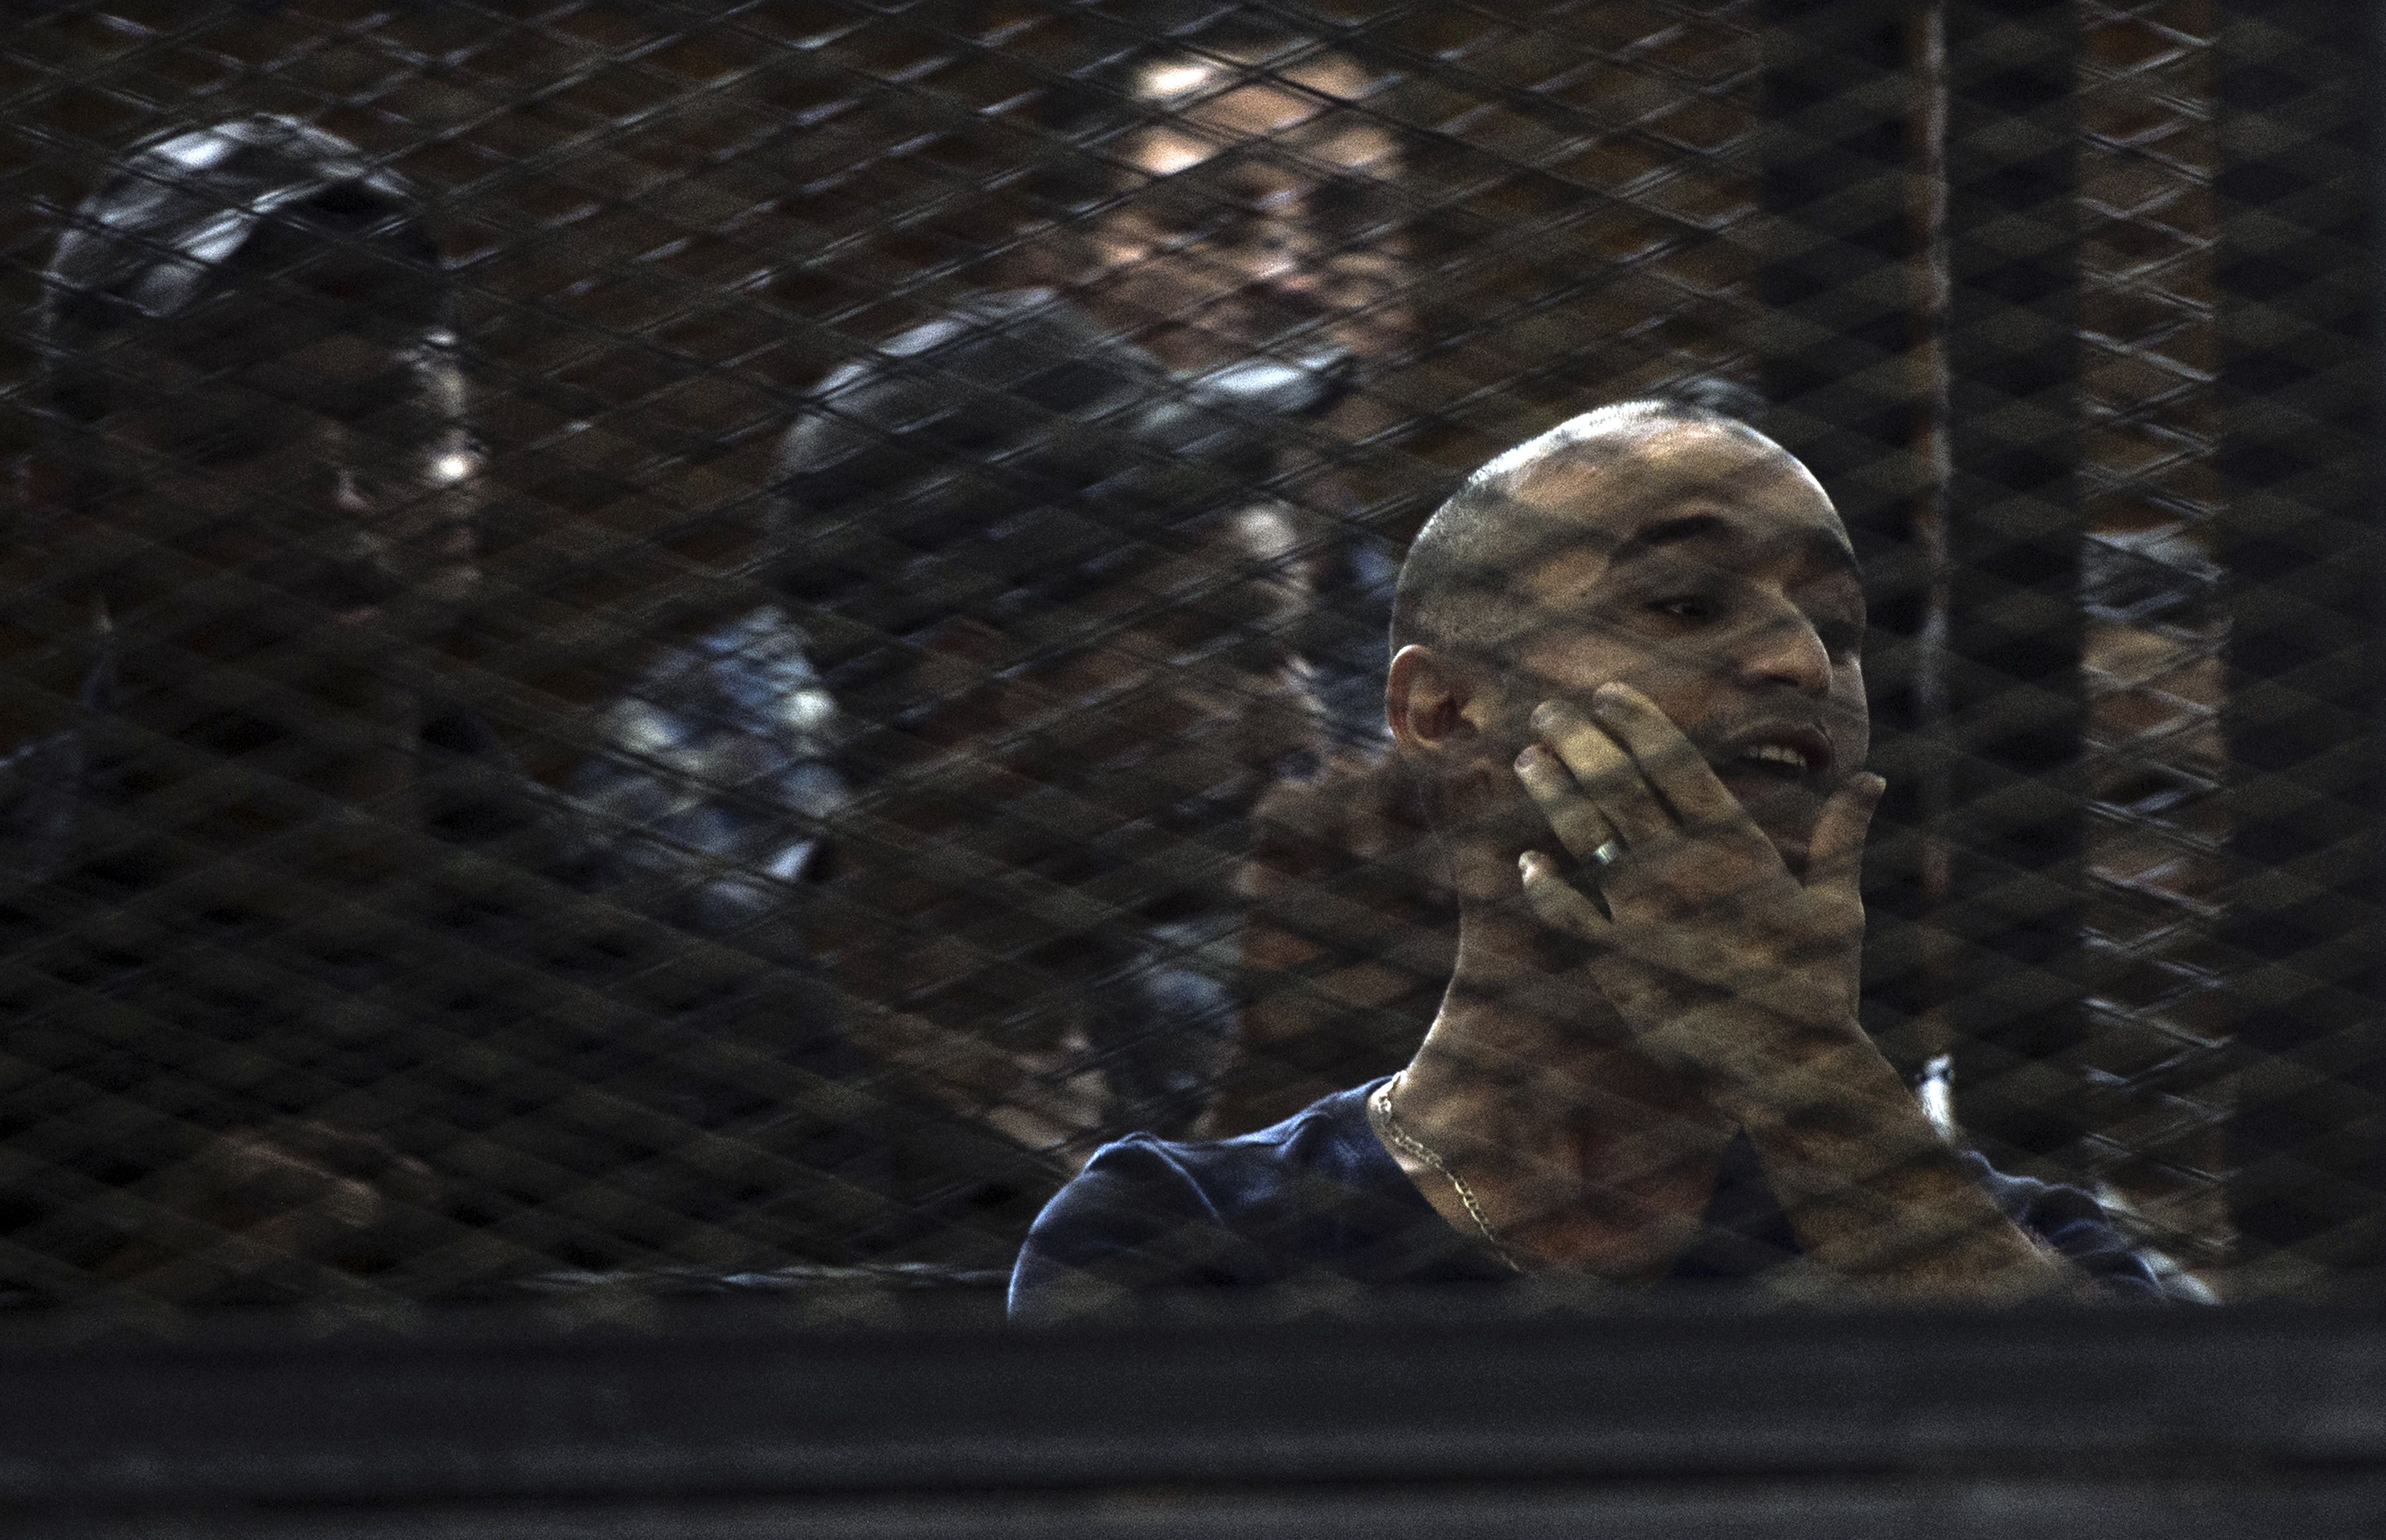 Egyptian political activist Ahmed Doma gestures behind the bars of the accused dock during his trial on charges of taking part in an unauthorized protest on June 15, 2014 in Cairo, Egypt. Ahmed Doma and 268 others are standing trial for alleged violence during clashes with security forces outside the Council of ministers headquarters in December 2011.  (AFP PHOTO / KHALED DESOUKI)